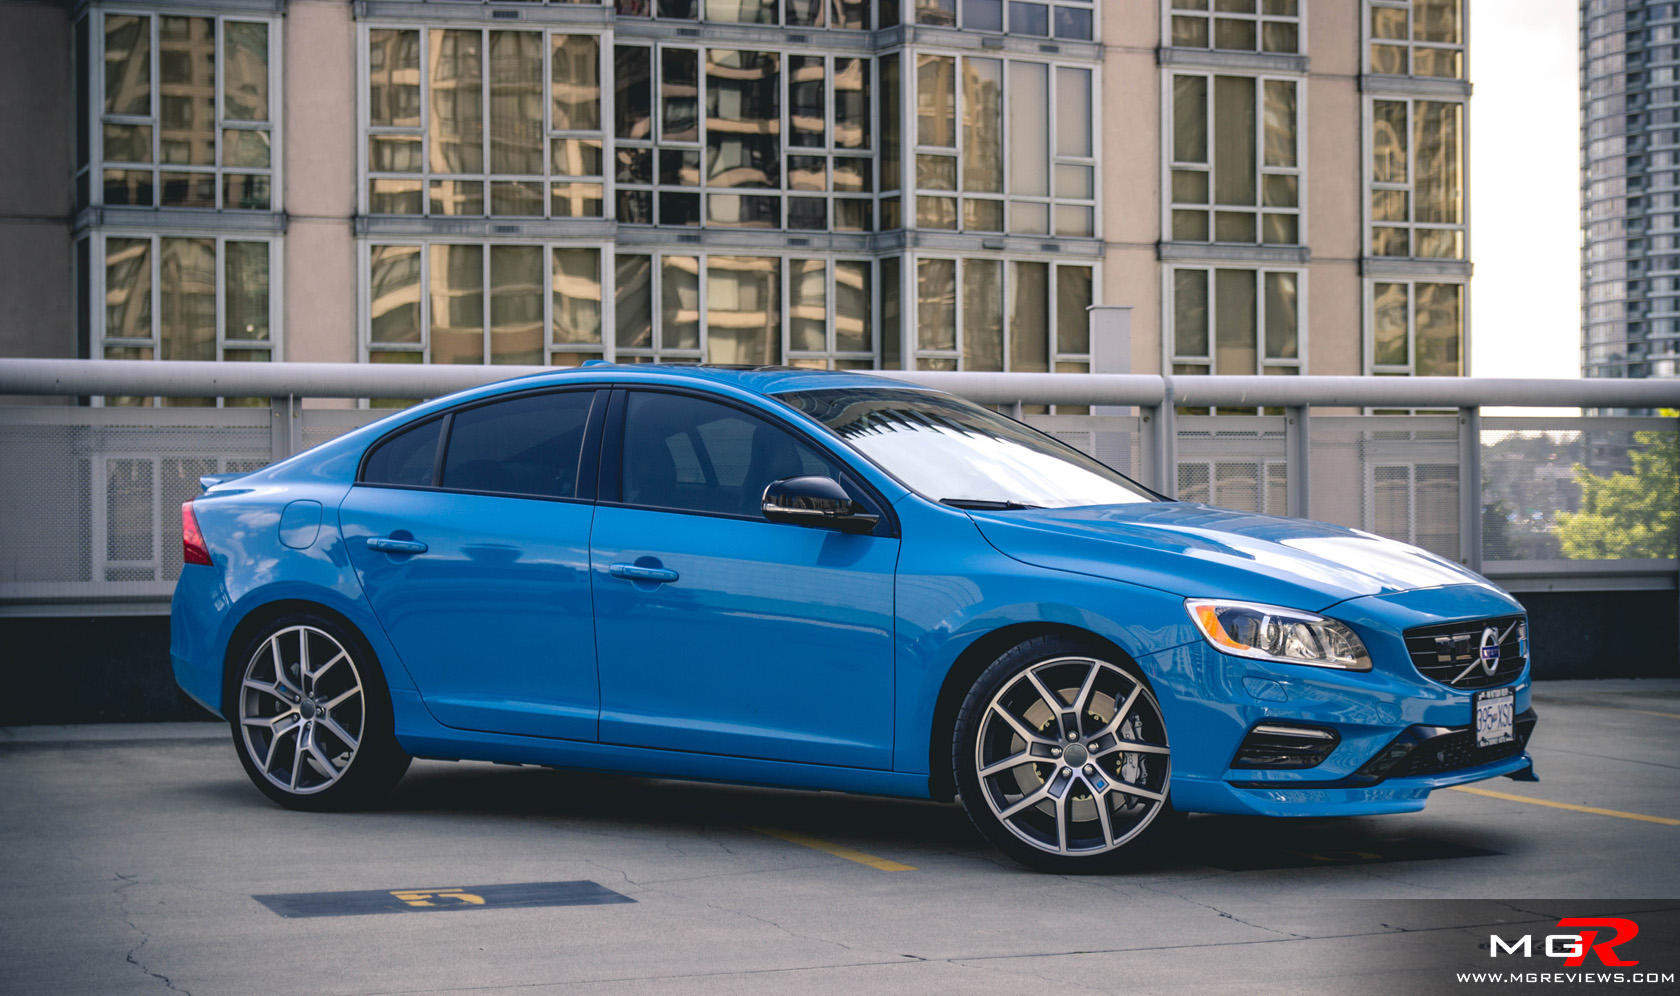 review 2015 volvo s60 polestar m g reviews. Black Bedroom Furniture Sets. Home Design Ideas